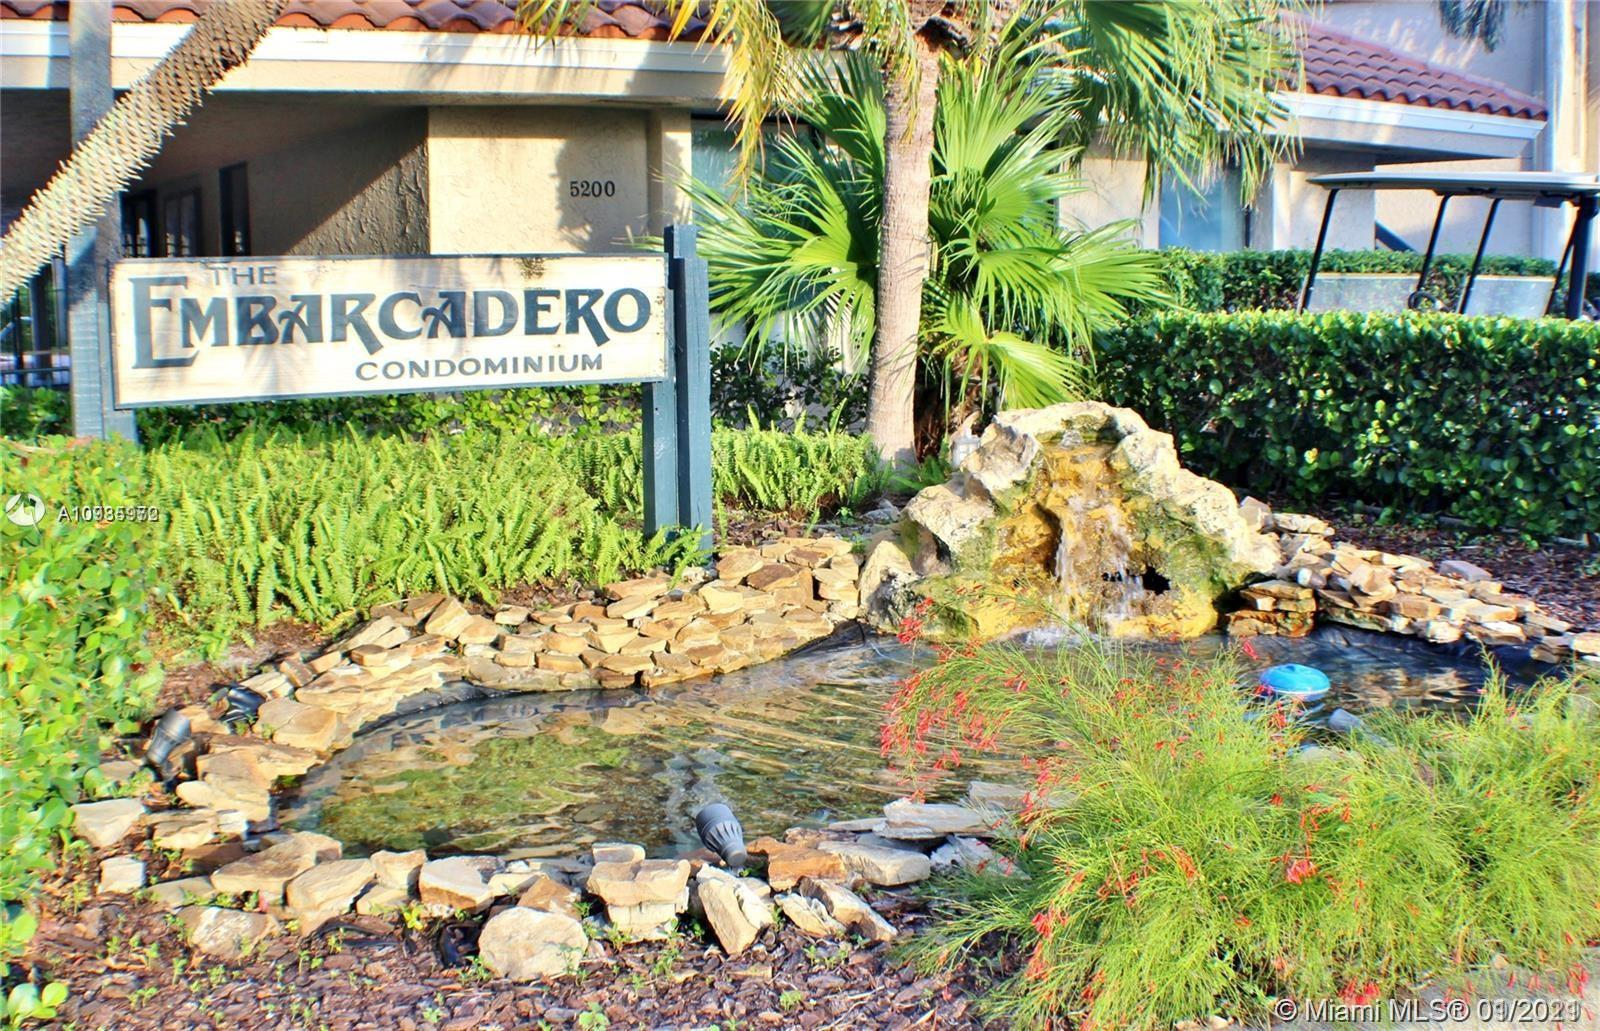 Fantastic 1st Floor unit in the gated community at Emabarcadero condominium. Both the unit and the complex are very well maintained. Unit has a great location in the complex.  Convenient easy access to plenty of shopping and restaurants nearby. Unit features new Dishwasher and all plumbing has been updated. New tankless water heater and Garbage Disposal. Tile floor throughout. Ceiling Fans and a great screened in porch too!! This is a must see .  Shown by appointment.